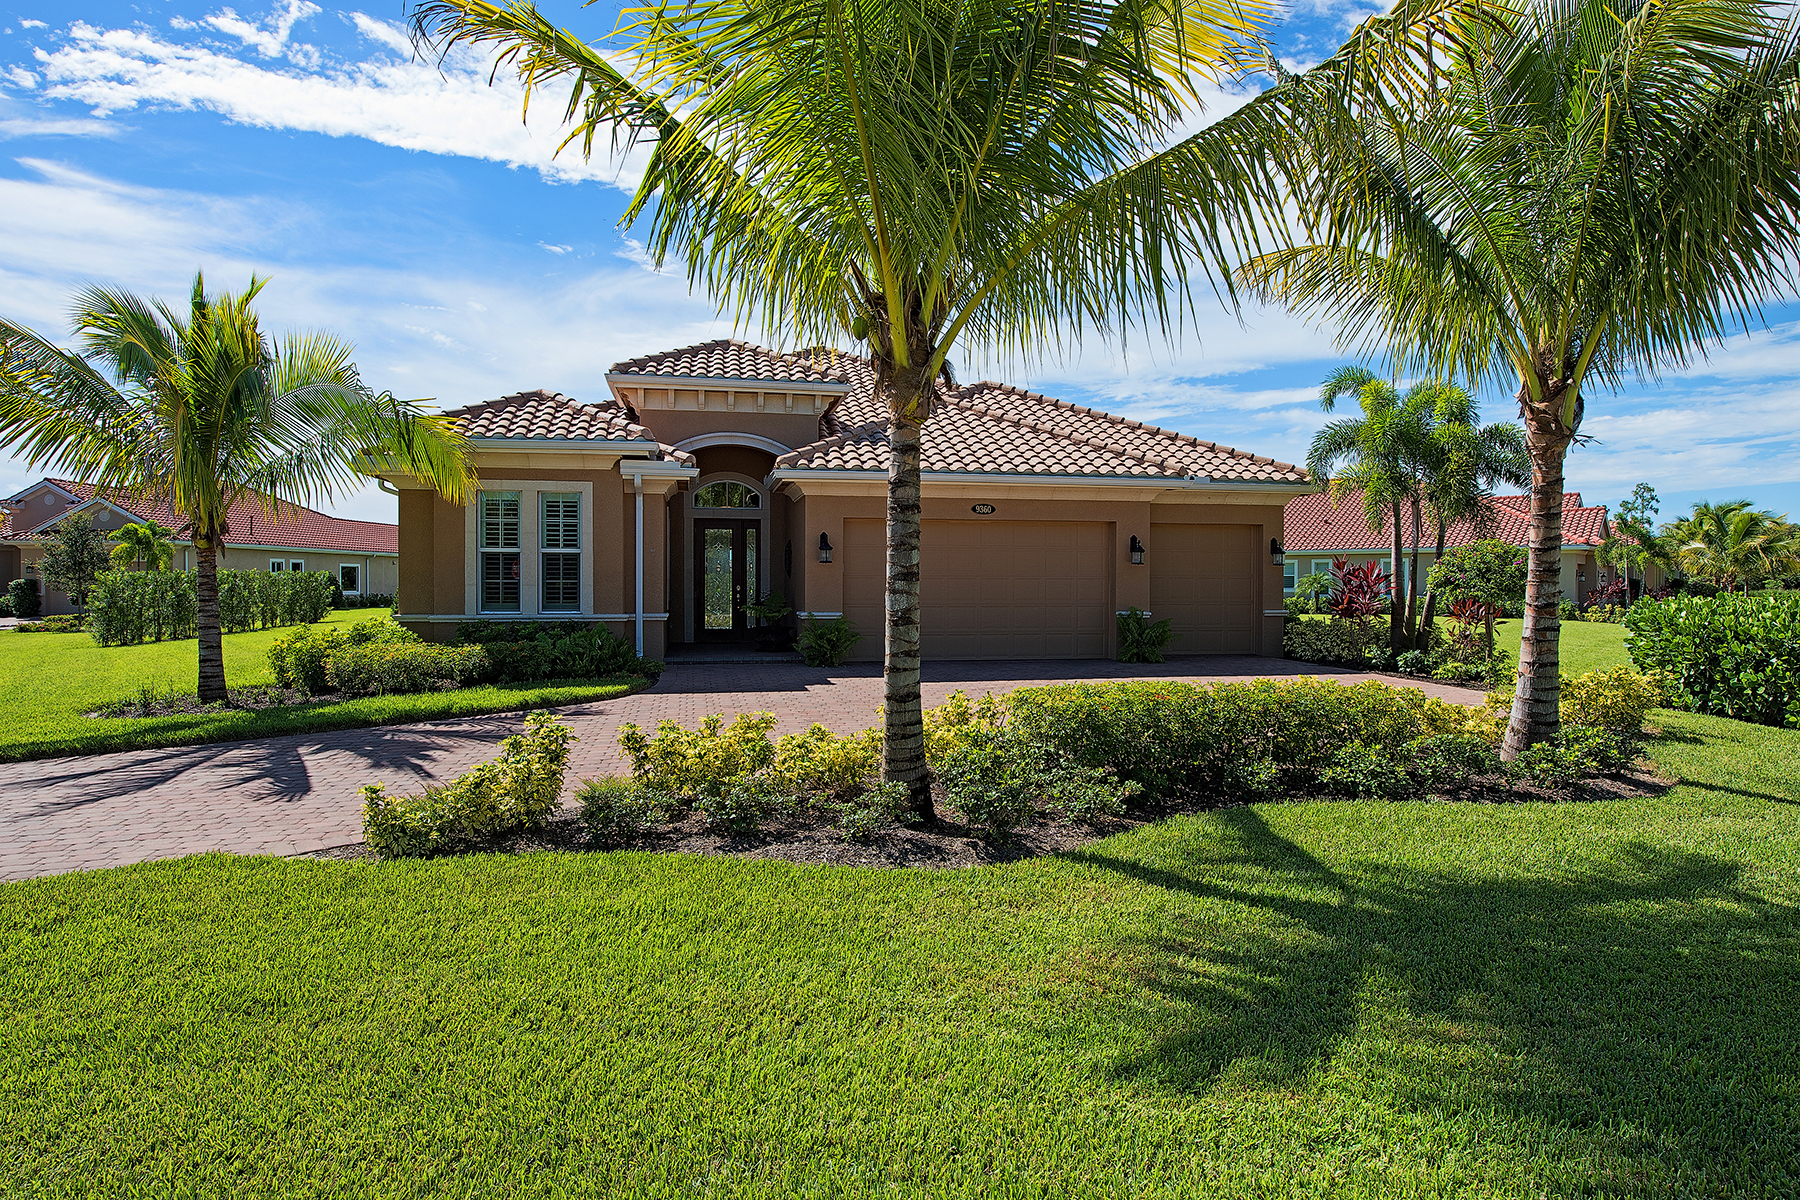 Single Family Home for Sale at FIDDLERS CREEK 9360 Vadala Bend Ct Naples, Florida, 34114 United States